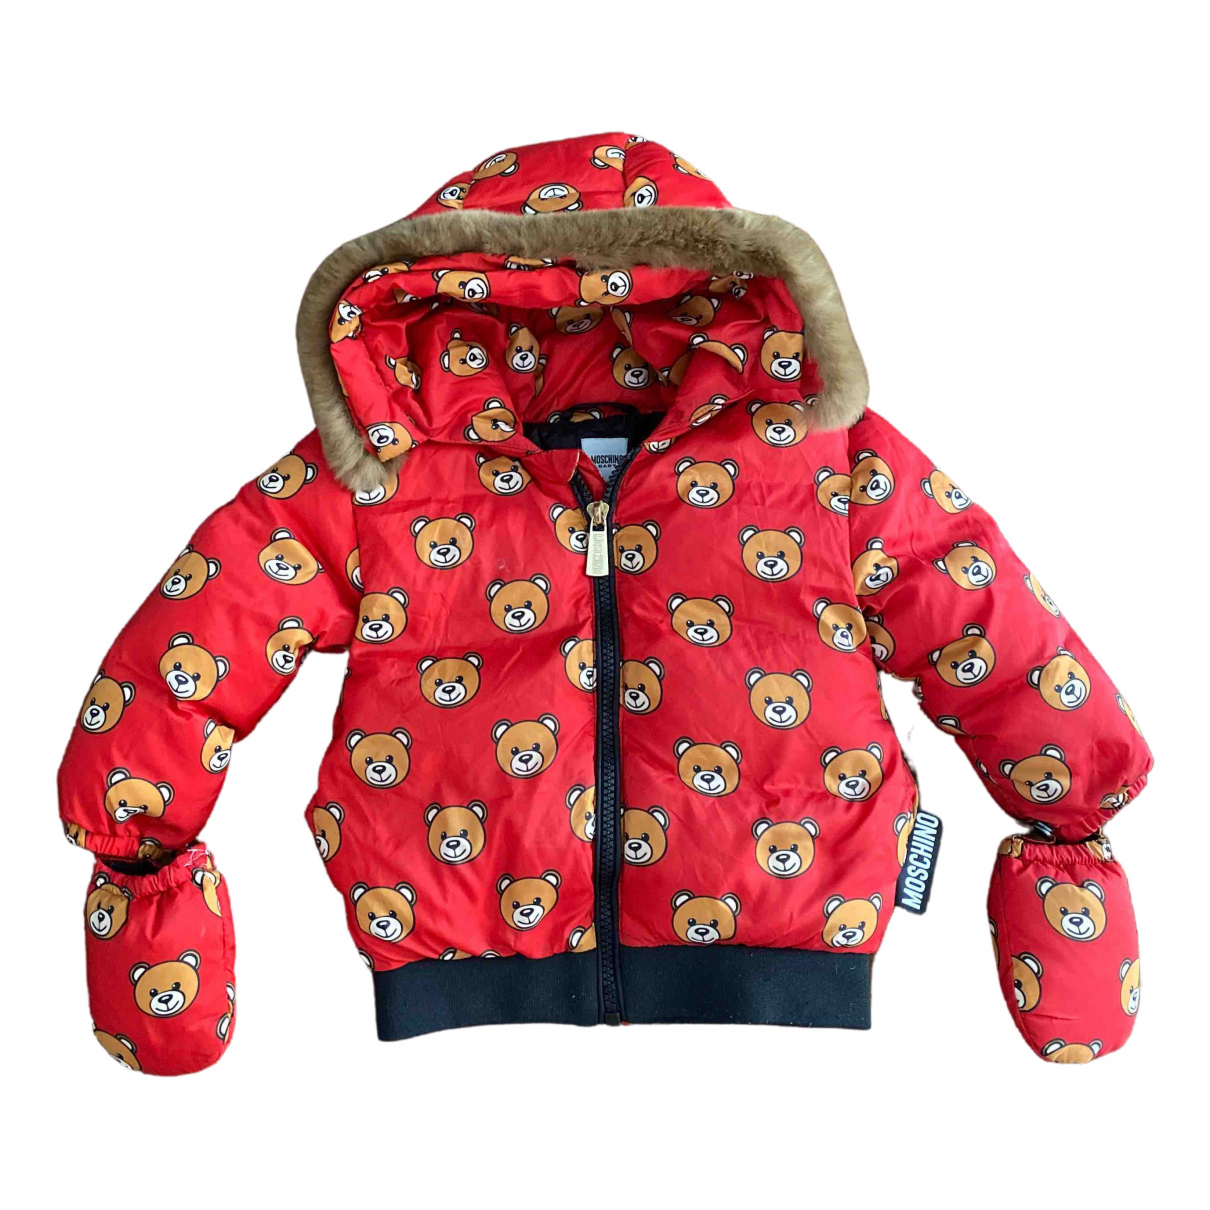 Moschino \N Red jacket & coat for Kids 12 months - up to 74cm FR